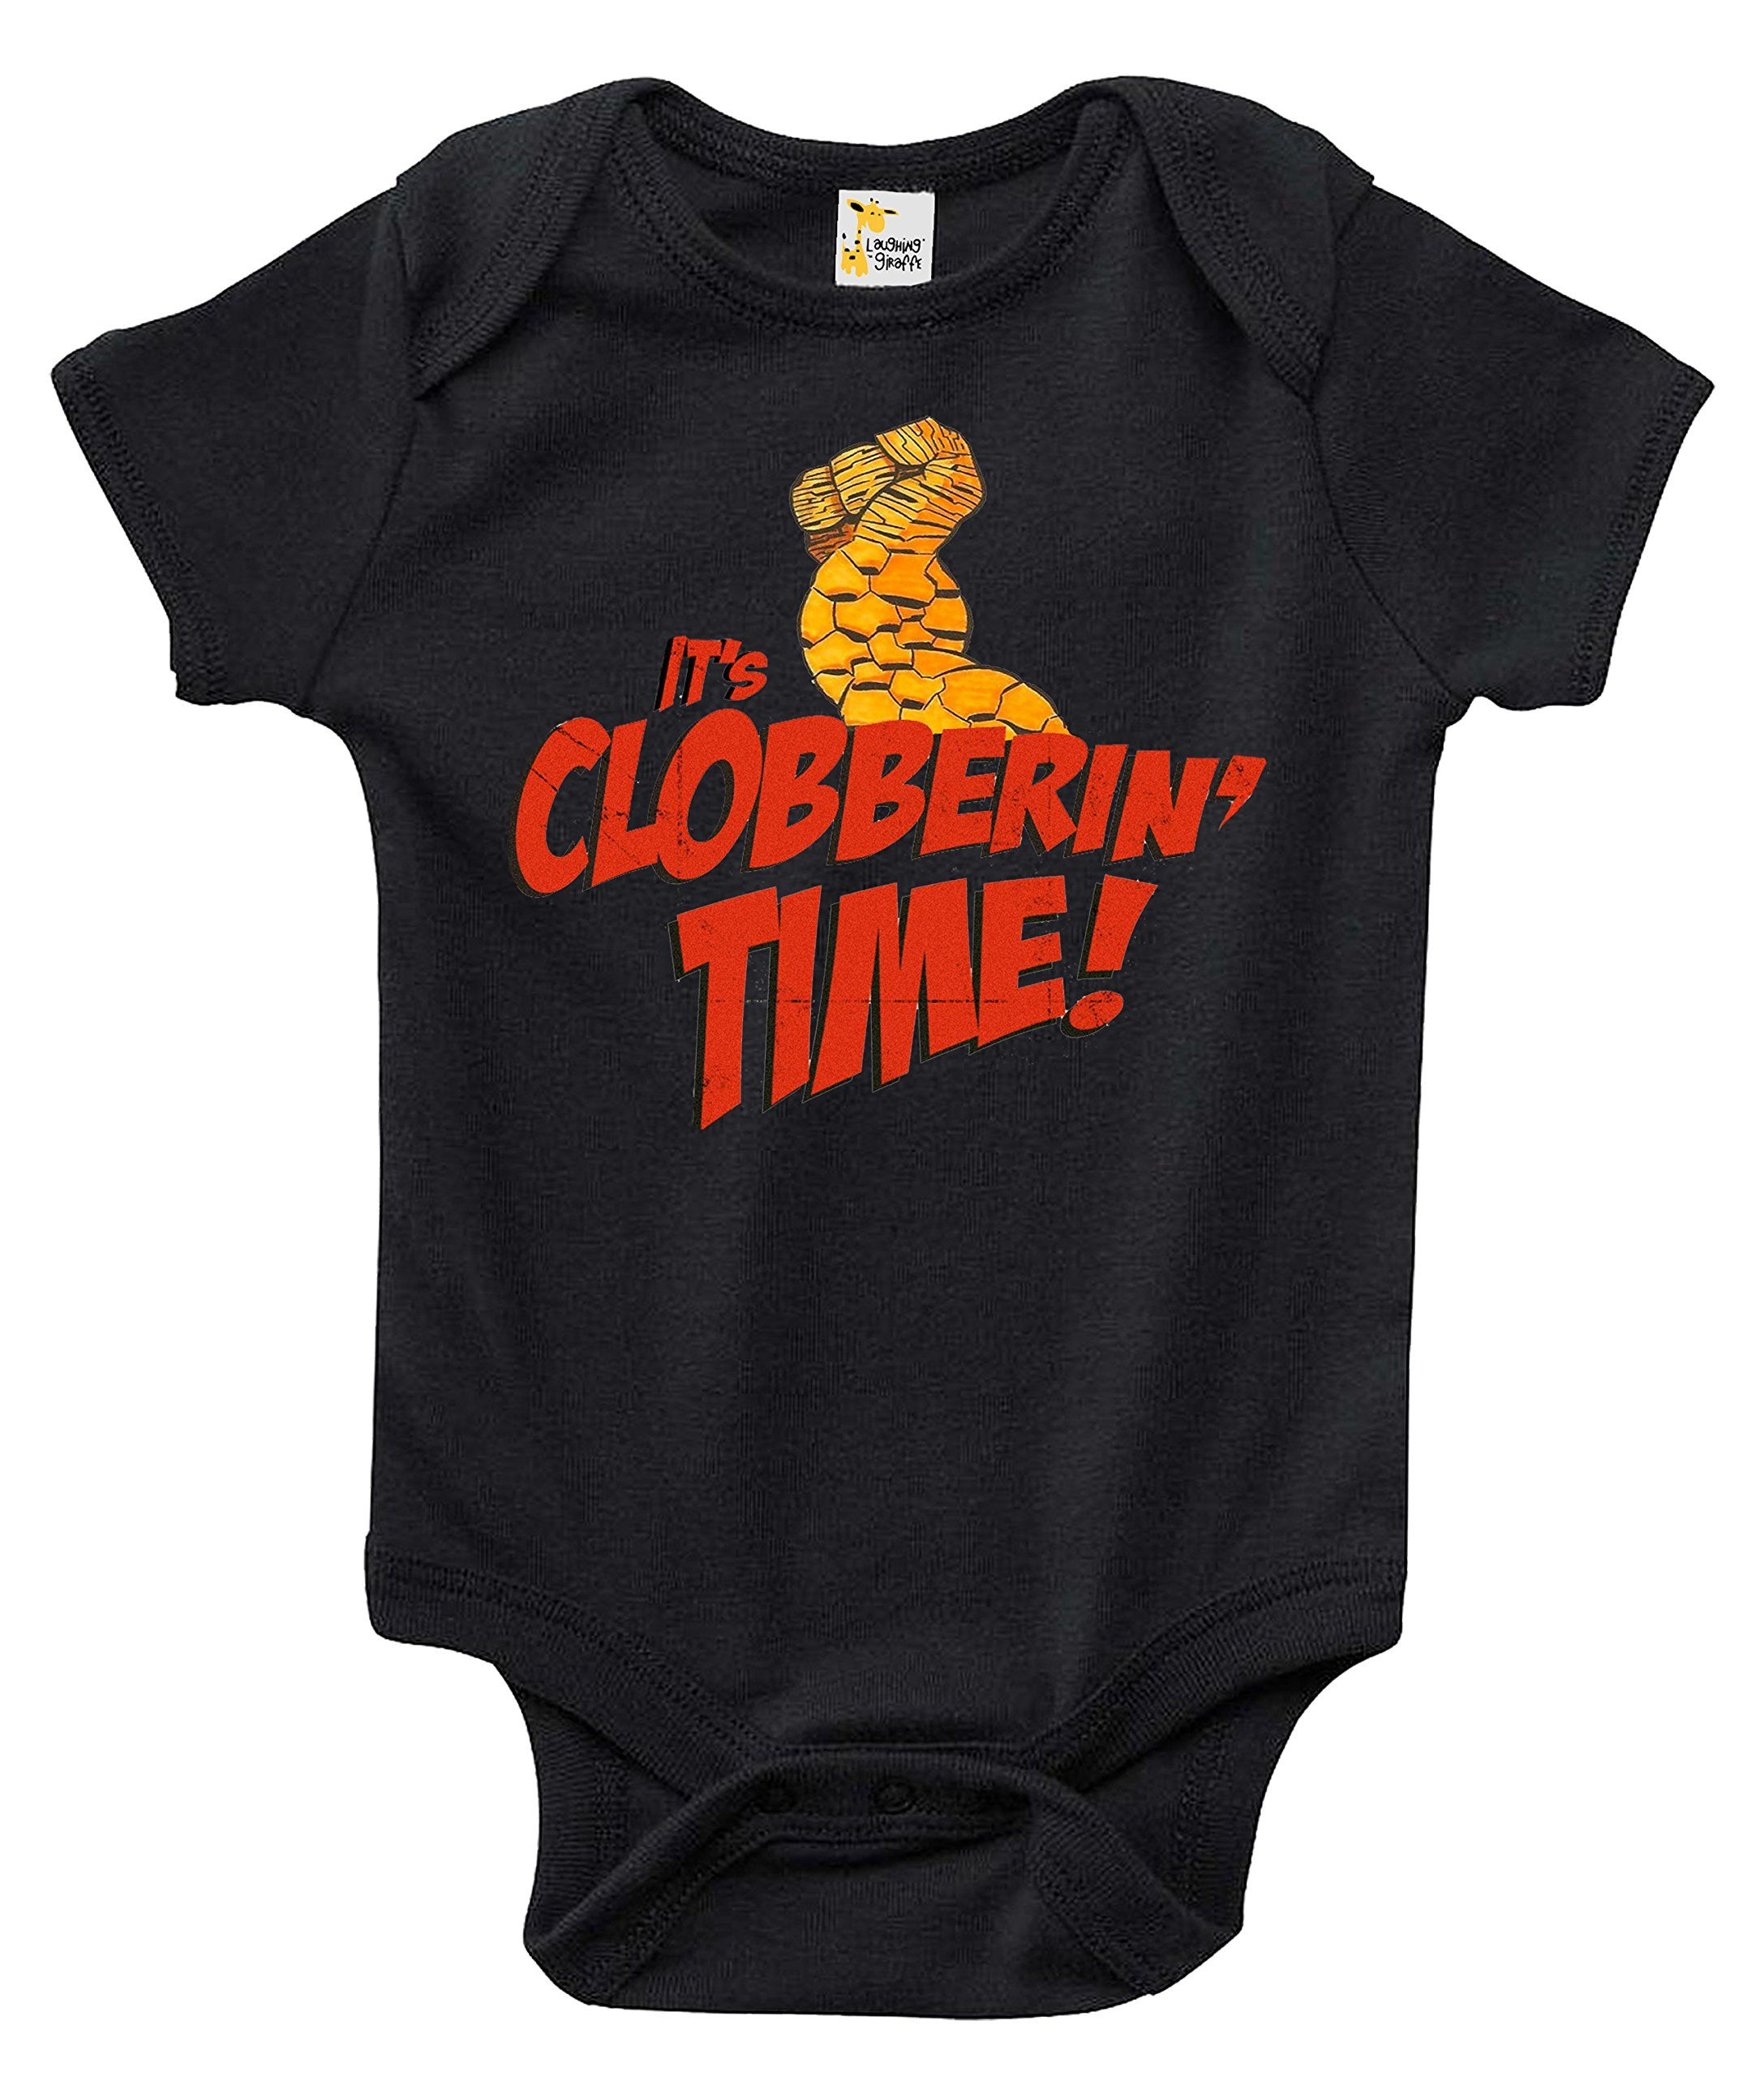 It s Clobberin Time Baby Bodysuit Cute The Thing Infant Baby Clothes